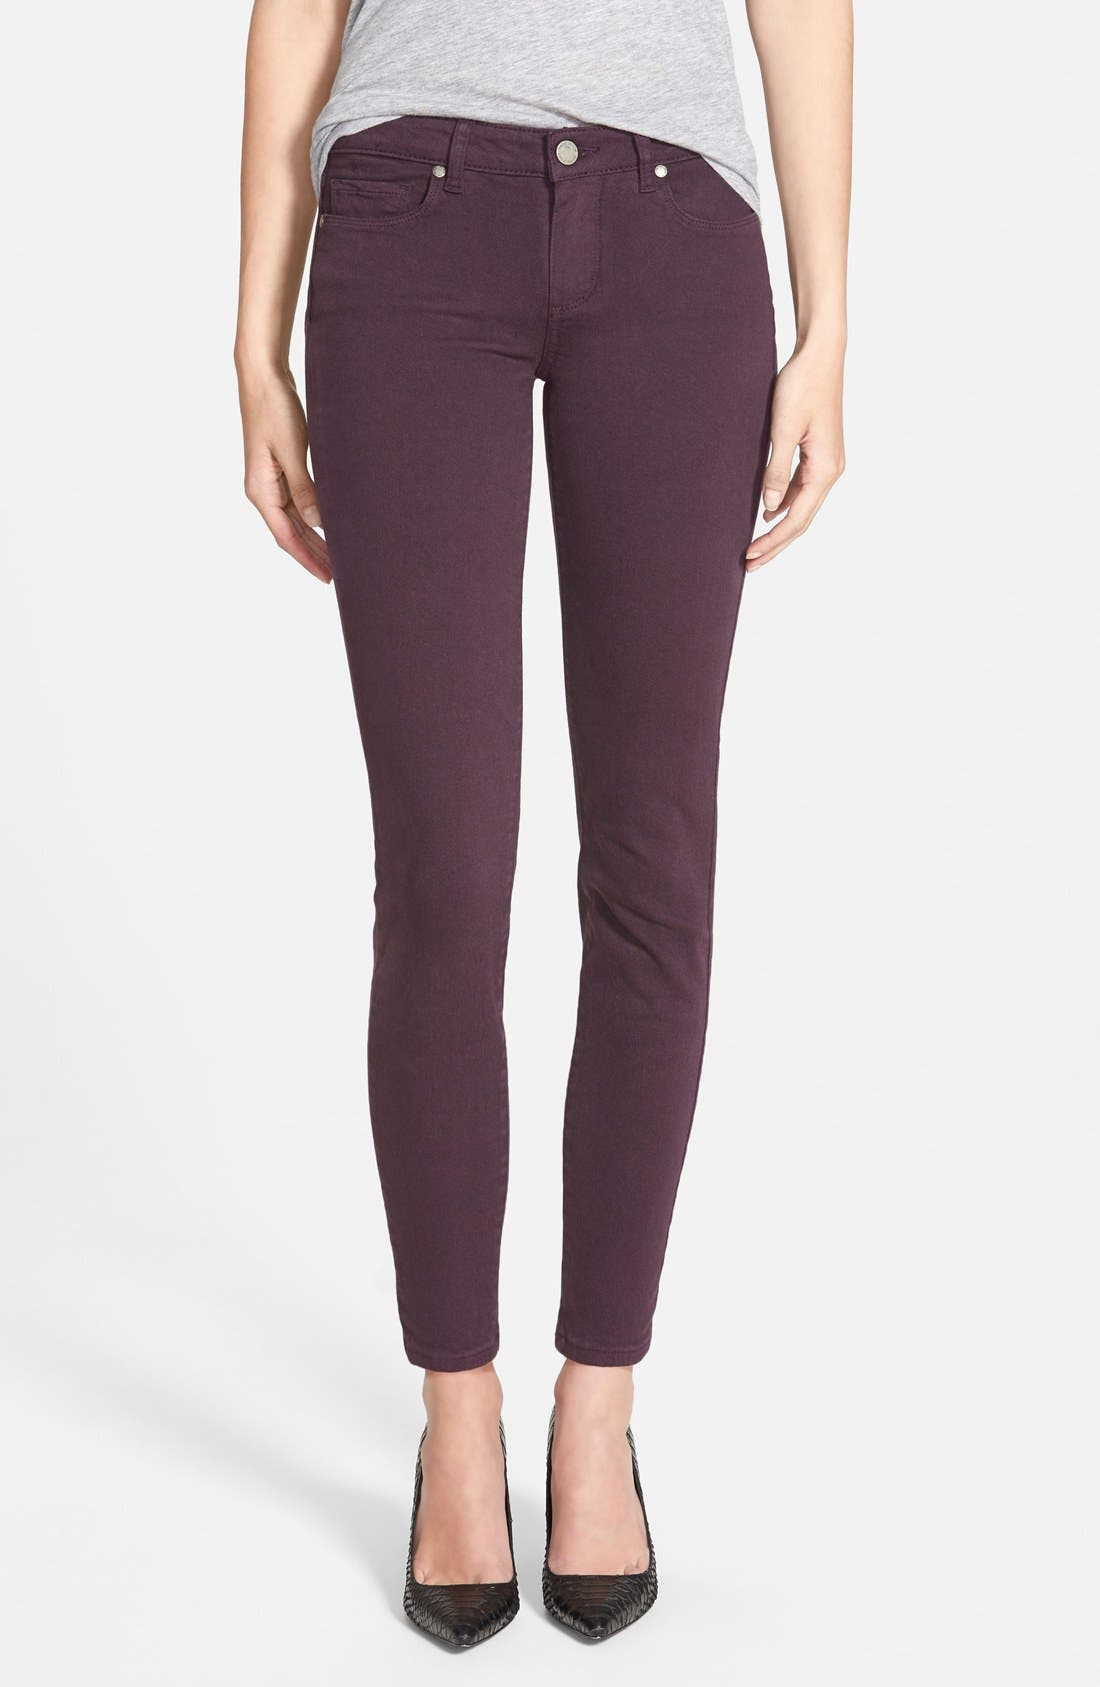 Alternate Image 1 Selected - Paige Denim 'Verdugo' Ankle Skinny Jeans (Autumn Plum) (Nordstrom Exclusive)